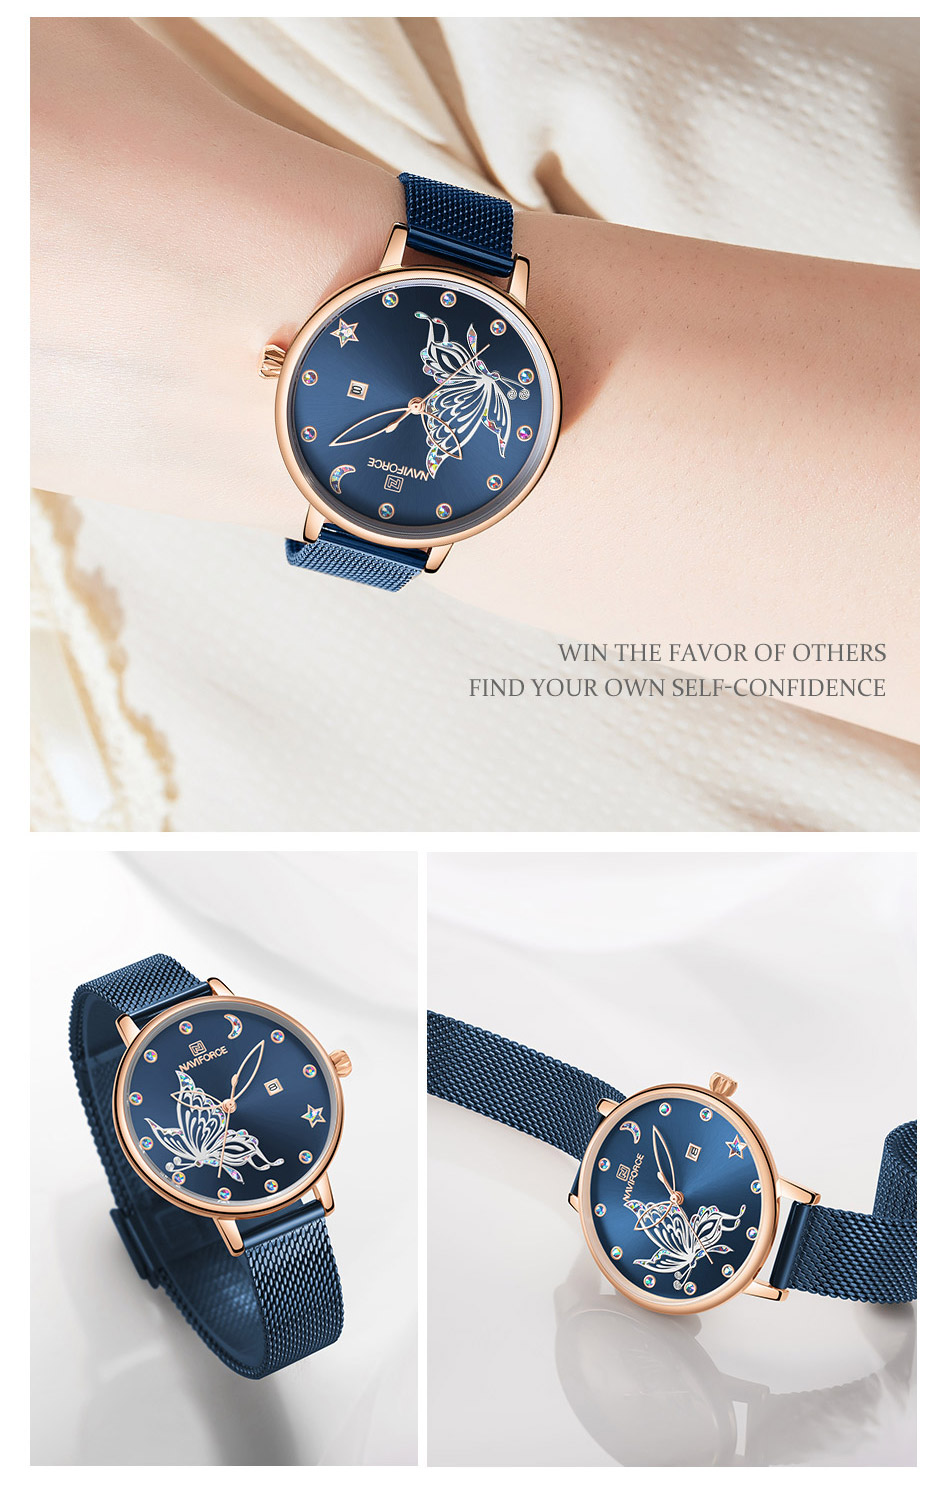 Hd361d66c594046fbb0789ce833dd01a8z - NAVIFORCE Luxury Brand Watch Women Fashion Dress Quartz Ladies Mesh Stainless Steel 3ATM Waterproof Casual Watches for Girl